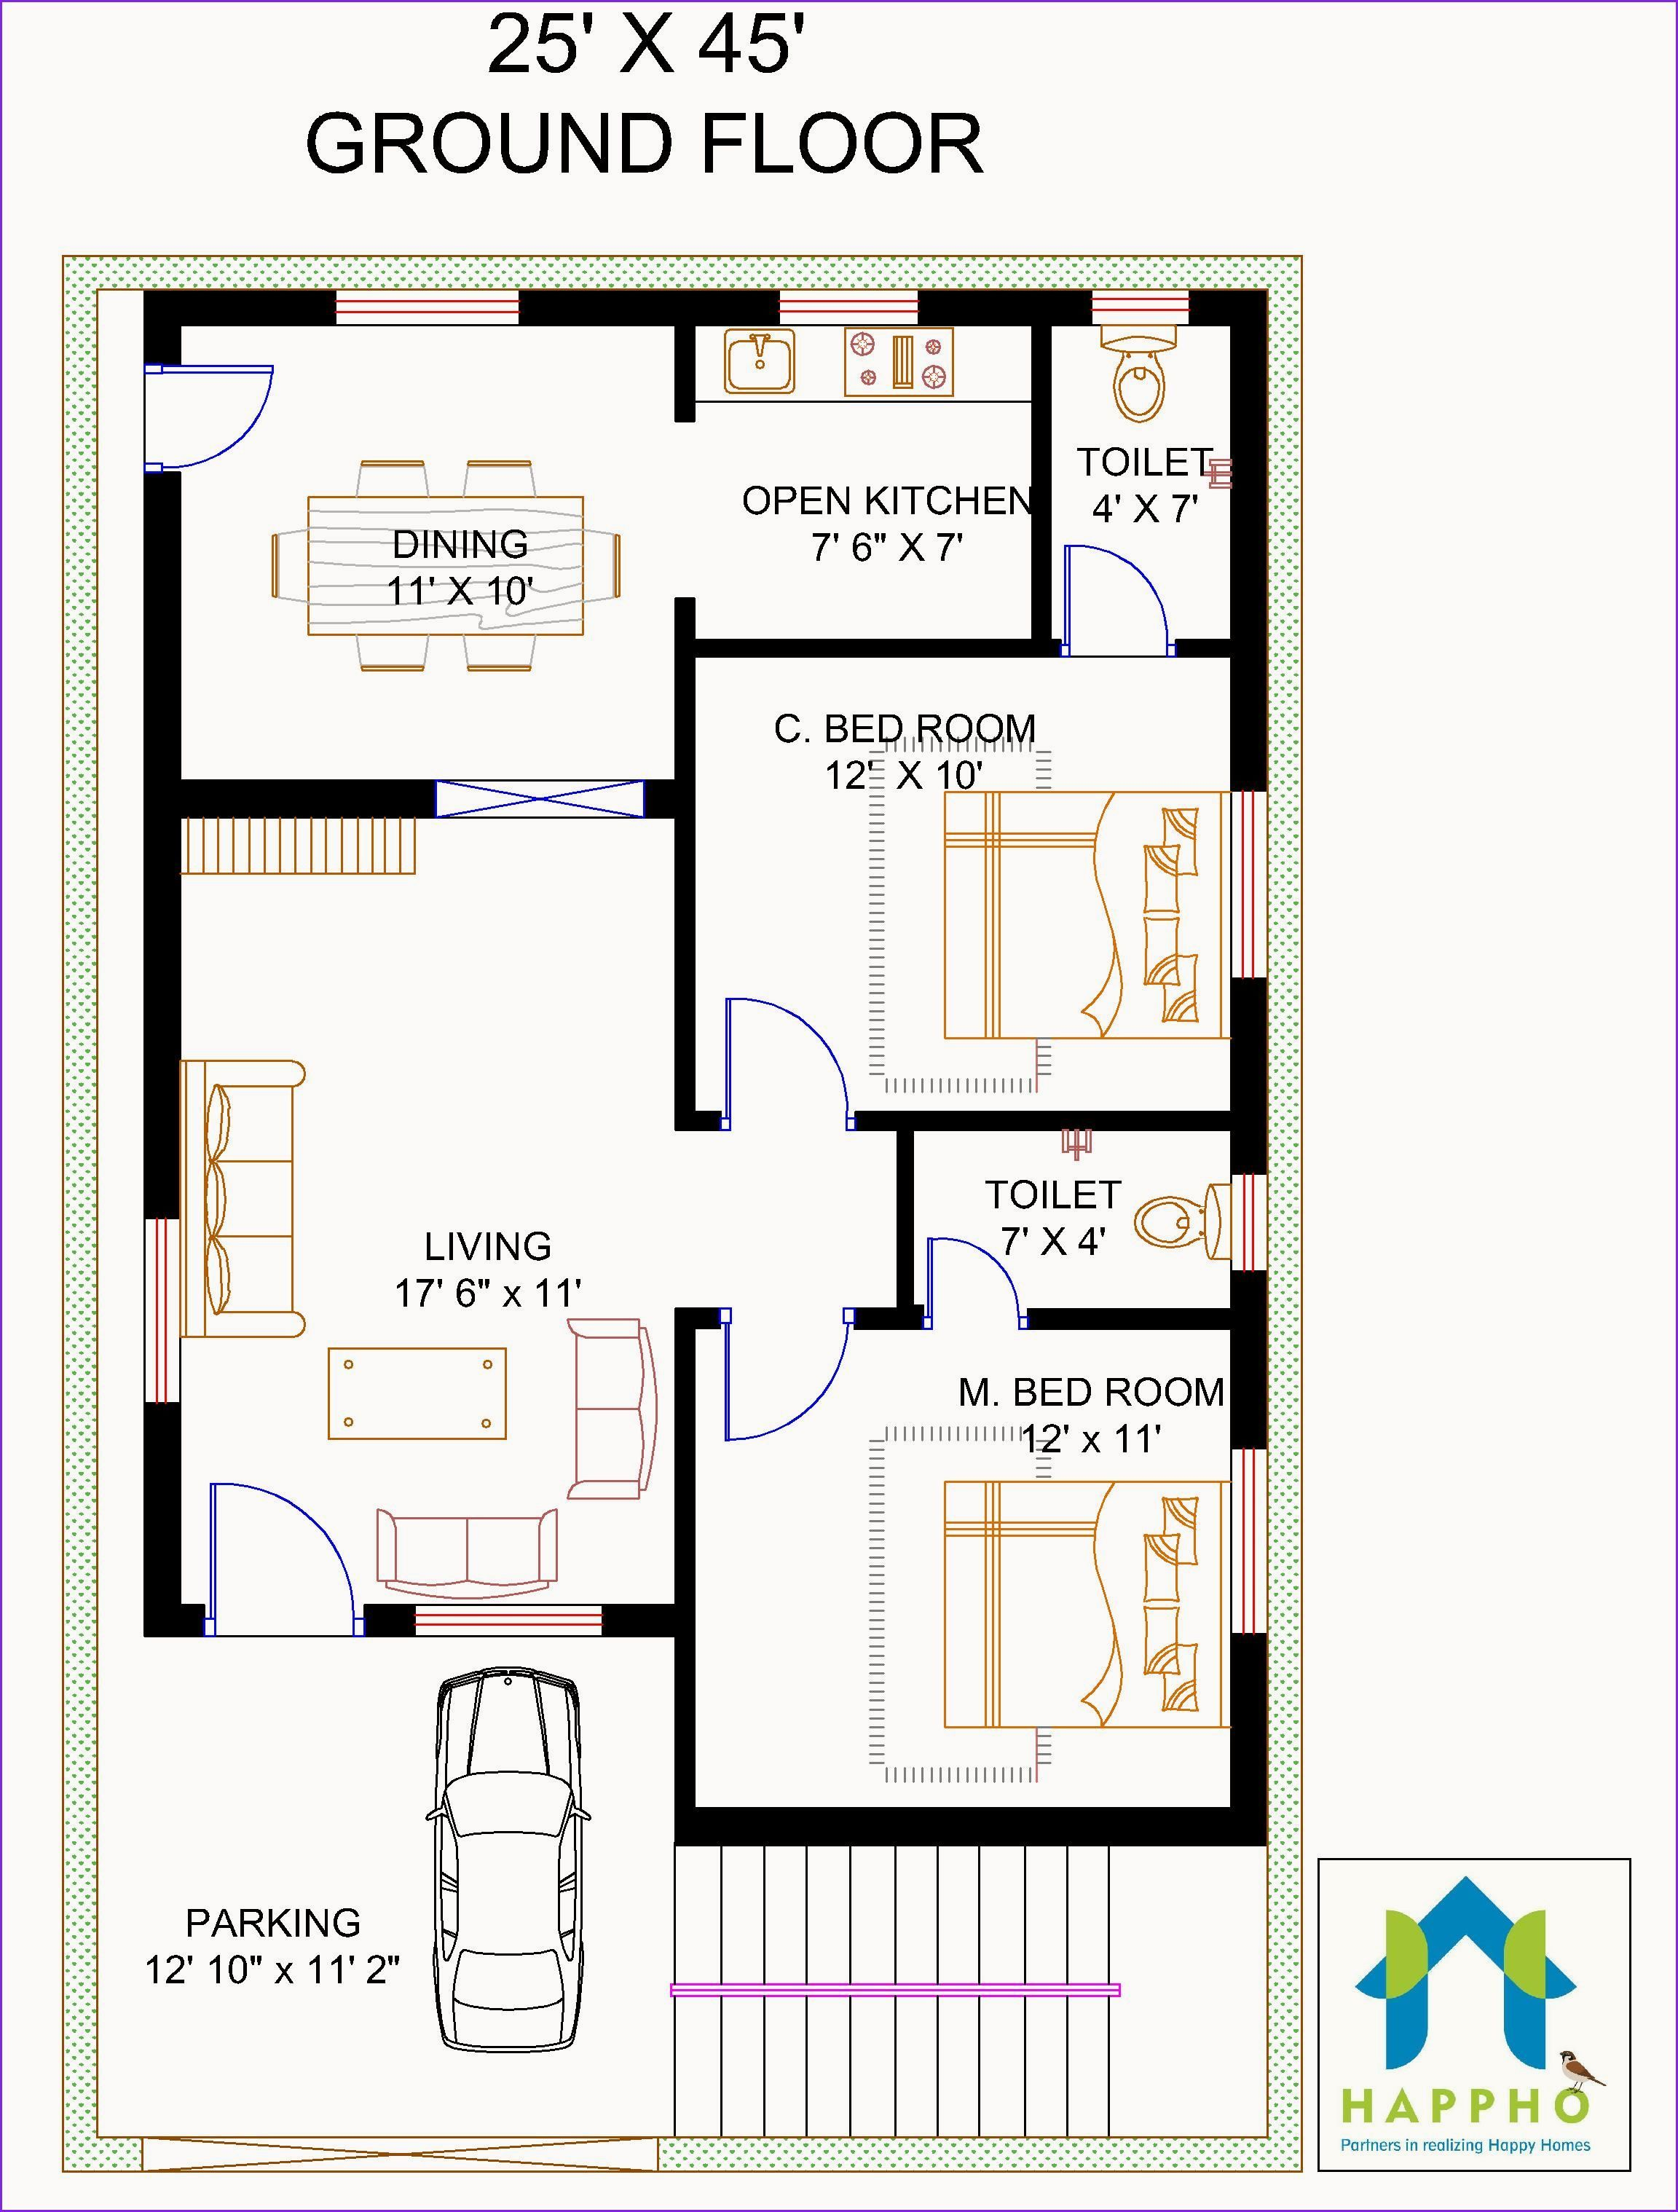 Awesome 1600 Sq Ft Open Concept House Plans In 2020 20x40 House Plans Bedroom House Plans Indian House Plans